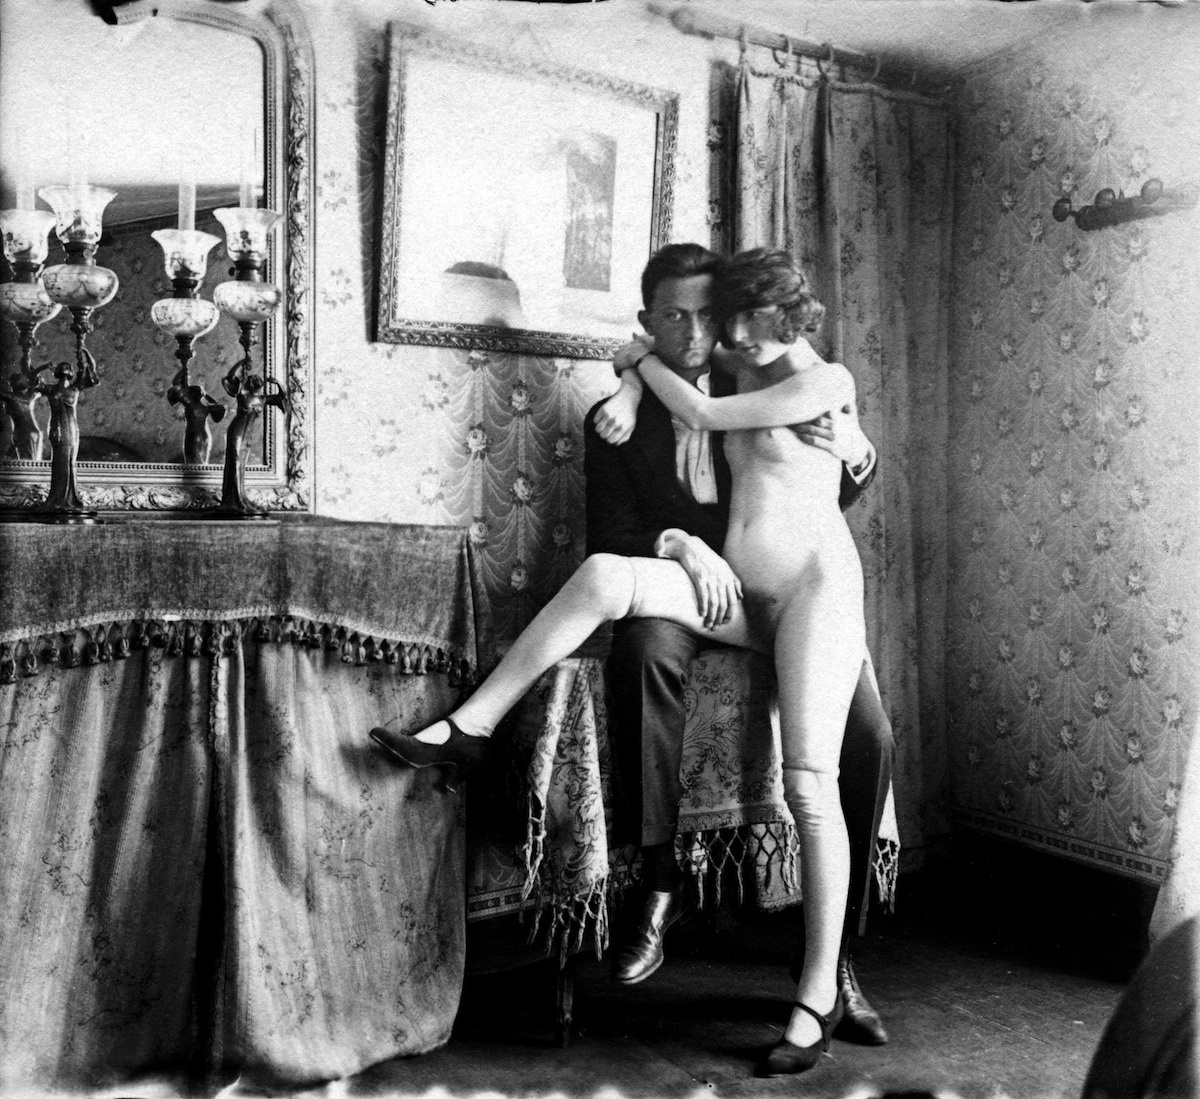 the-life-of-1930s-parisian-prostitutes-440-body-image-1424802157